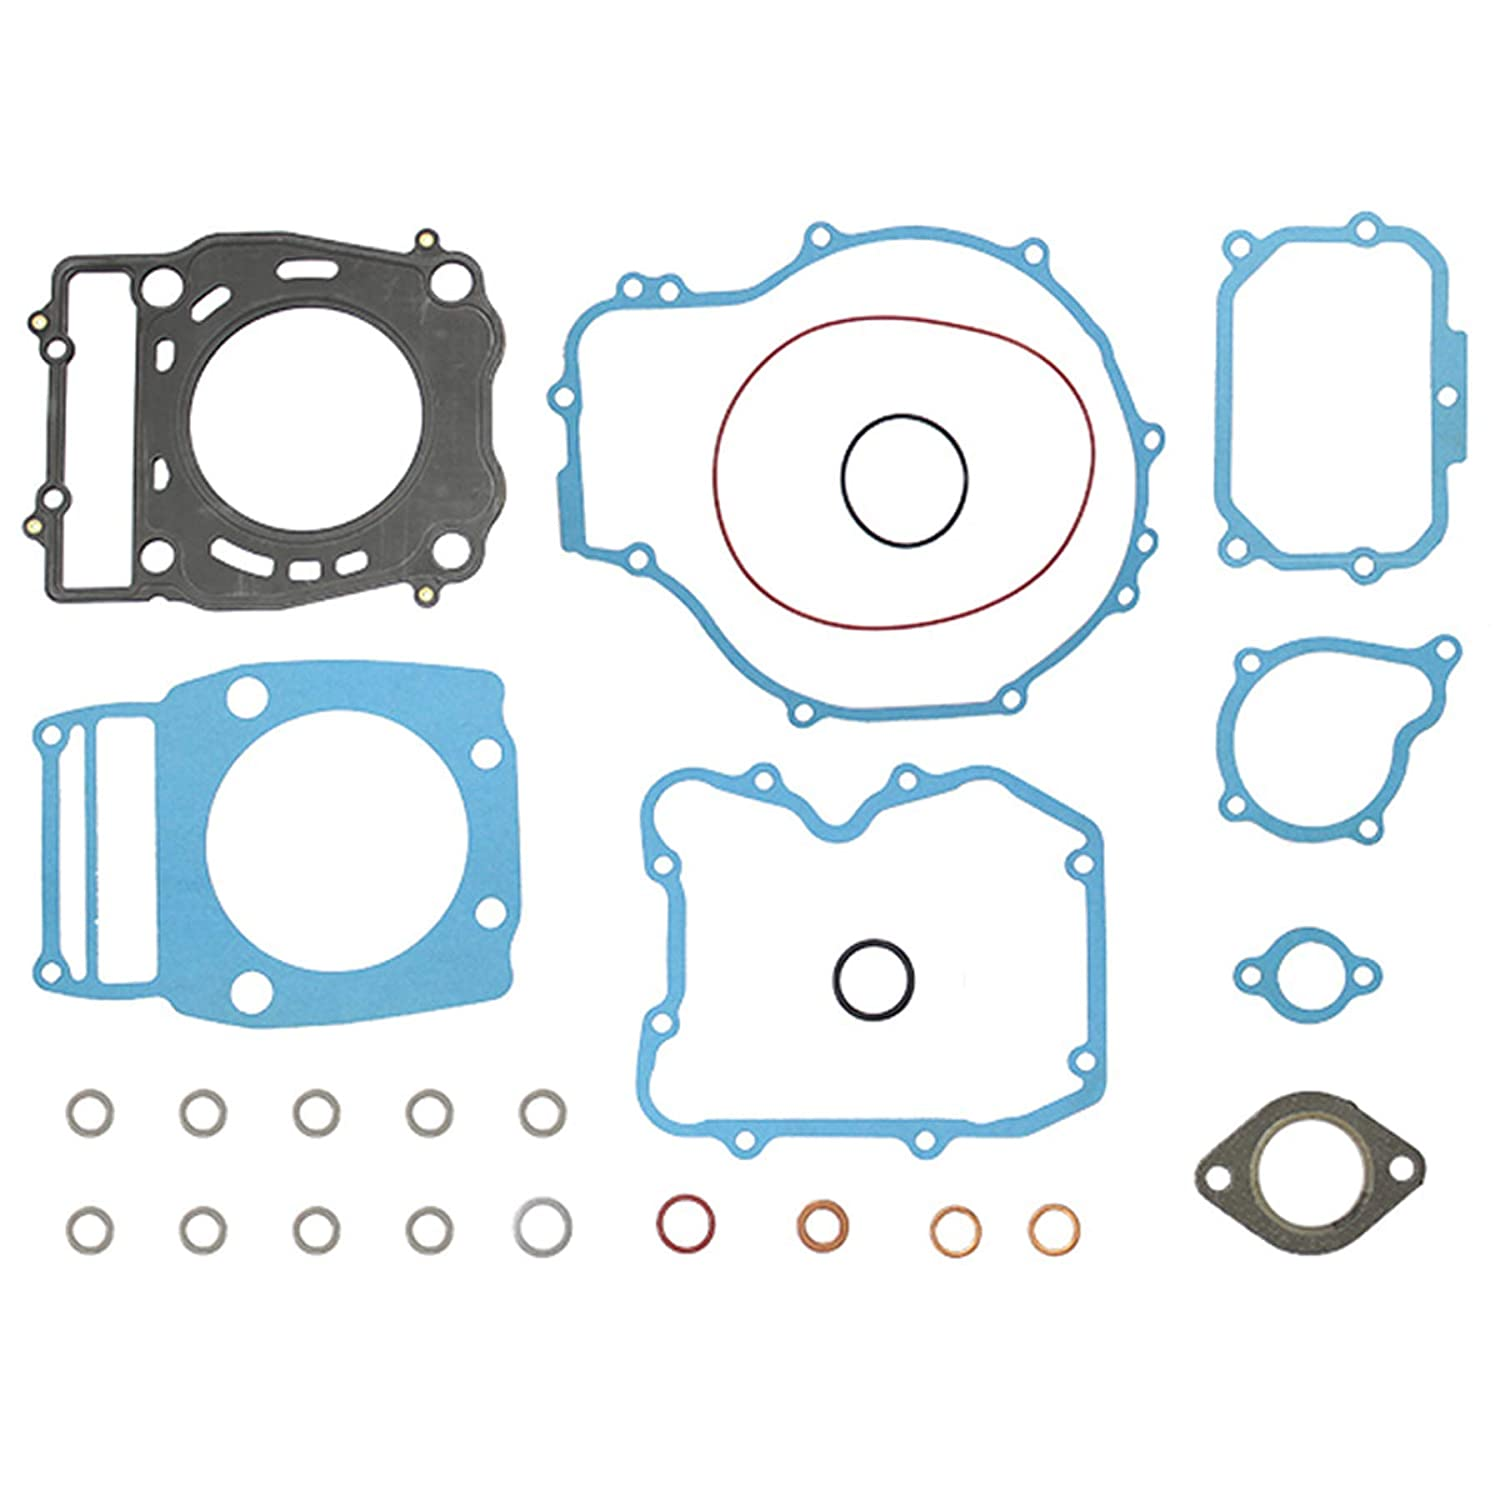 Complete Gasket Kit 2010 Polaris Sportsman 400 HO ATV